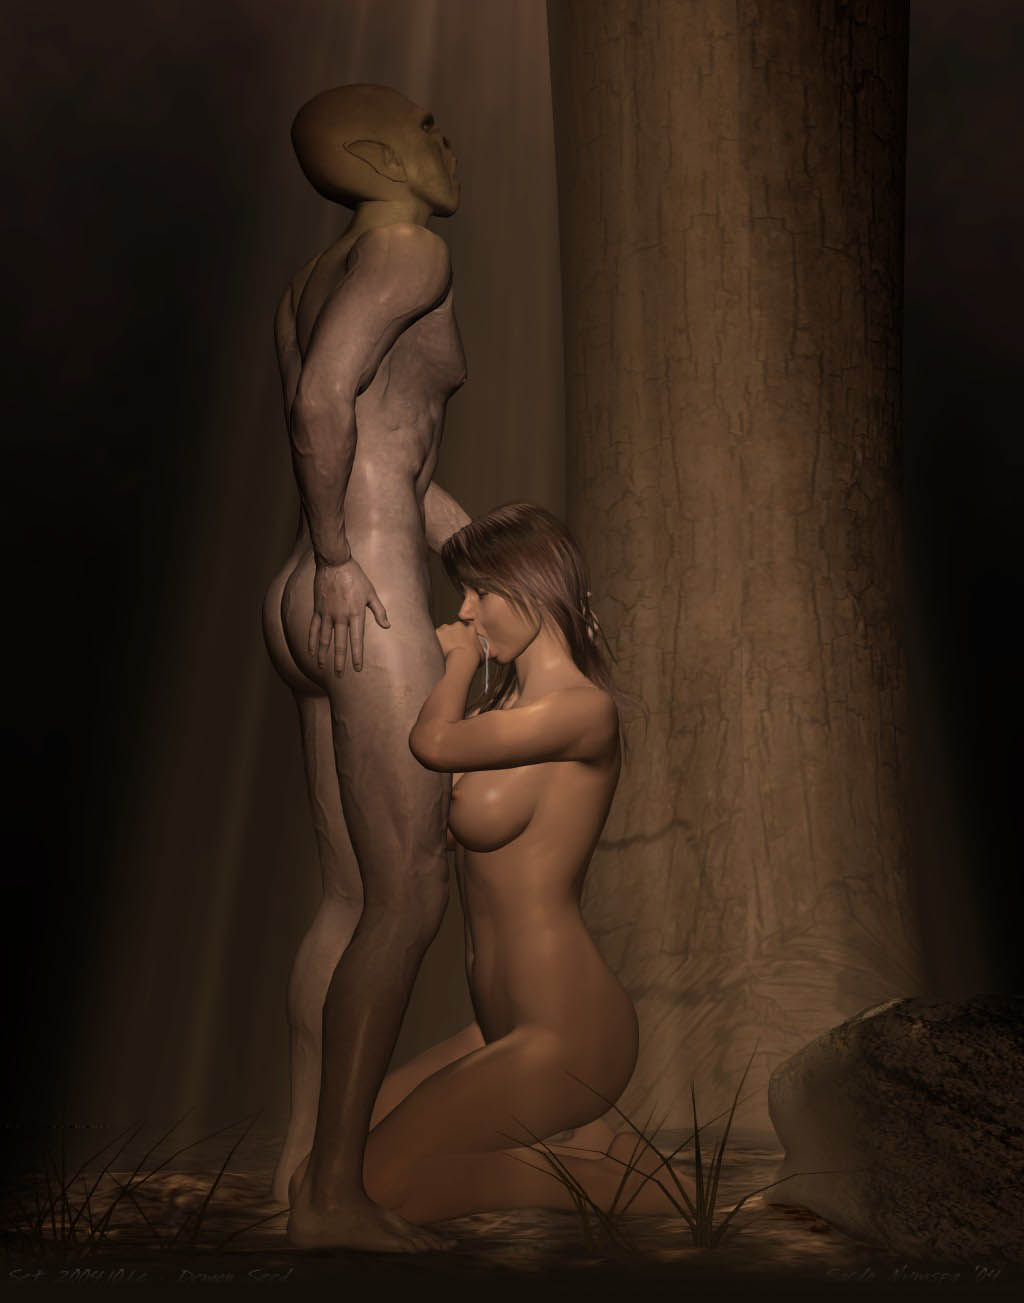 Wallpaper demon nude 3d hentia photo